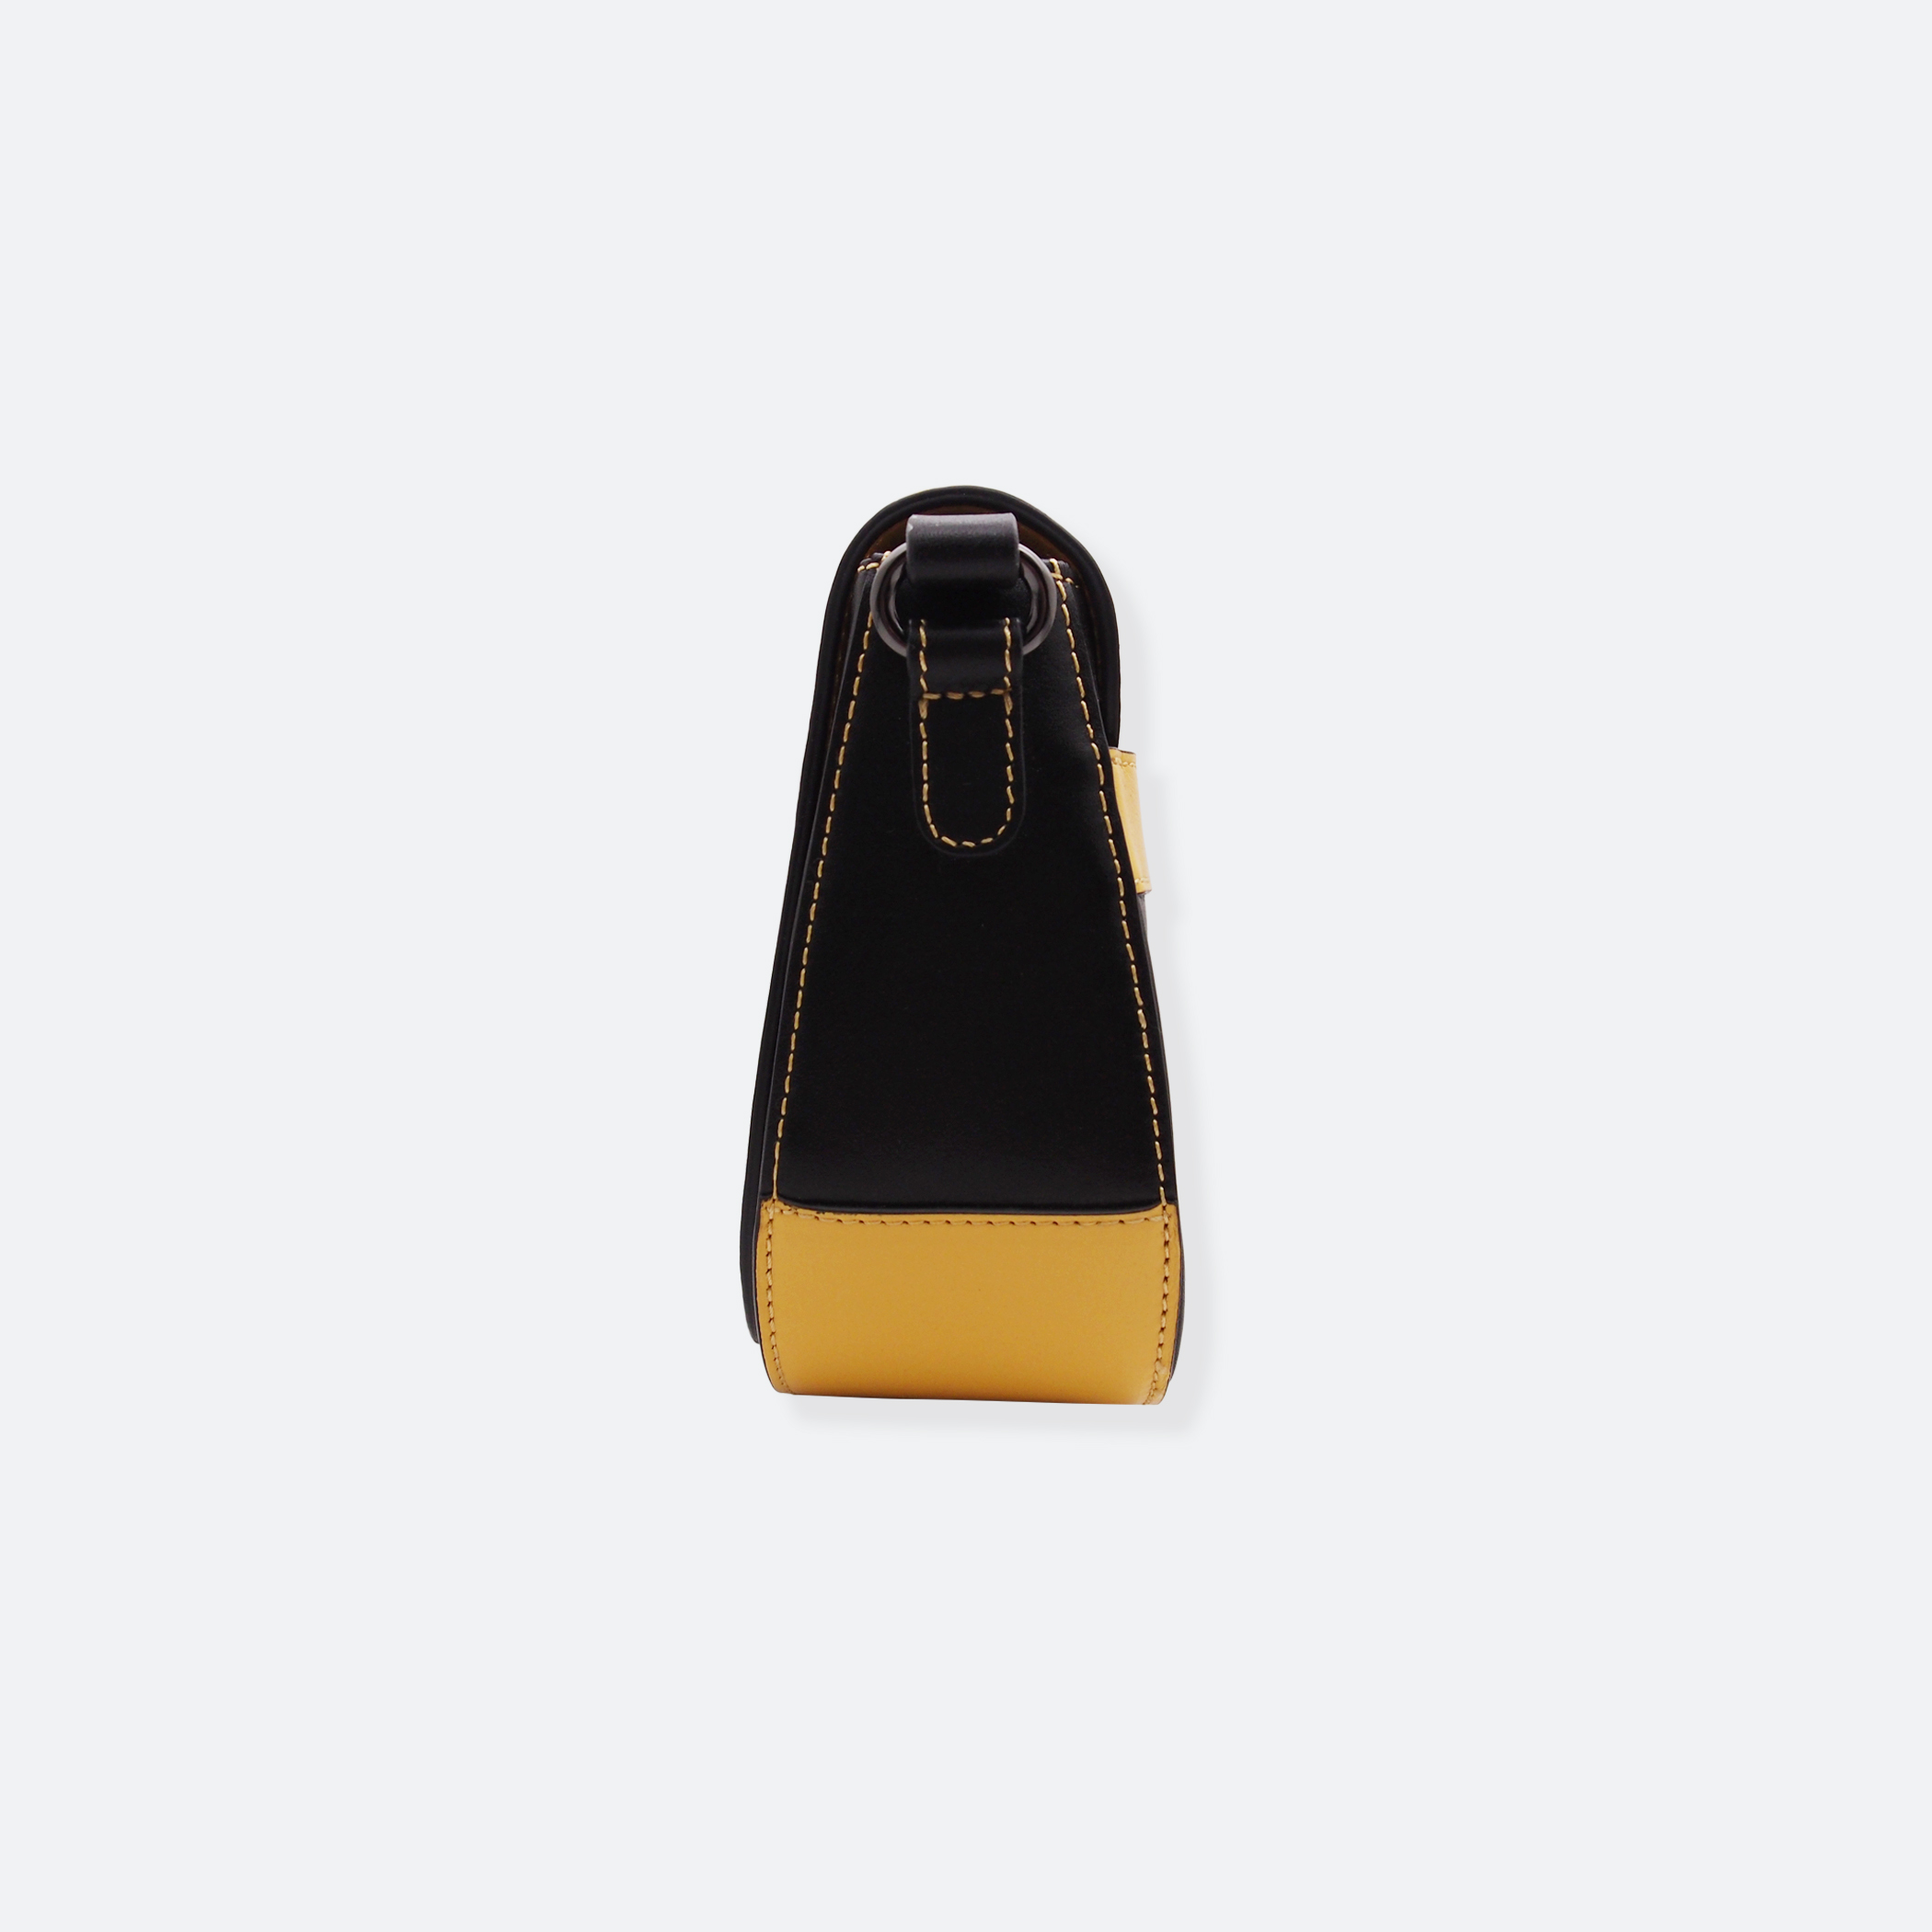 OhMart POP! Bag(Black-Yellow) 2